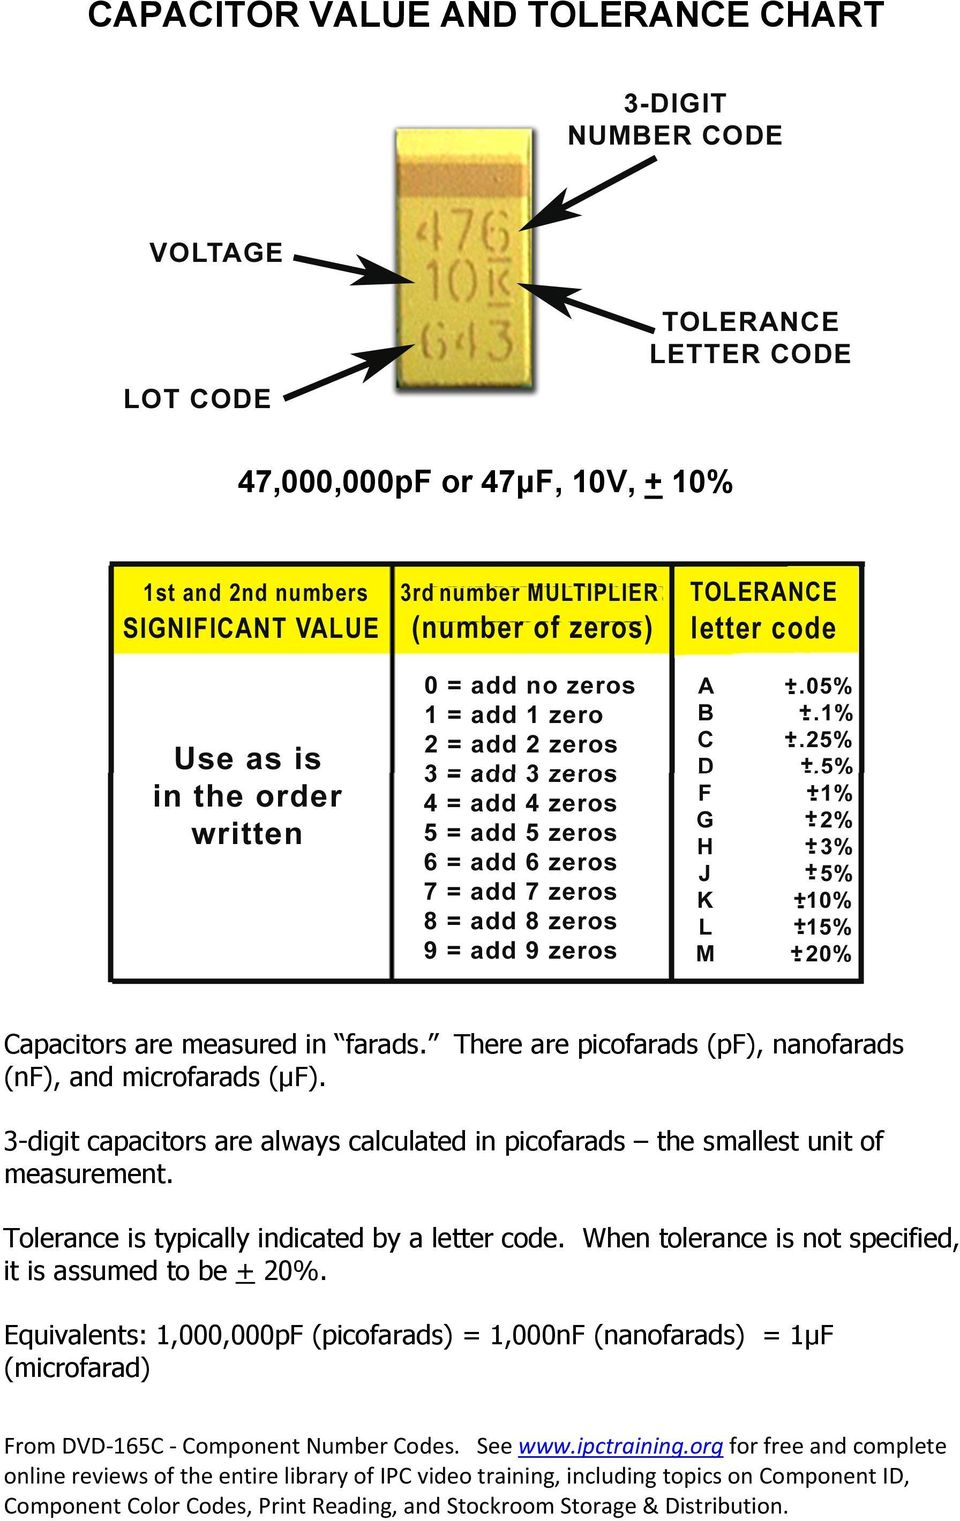 Capacitor Tolerance Letter Code on reading capacitor markings